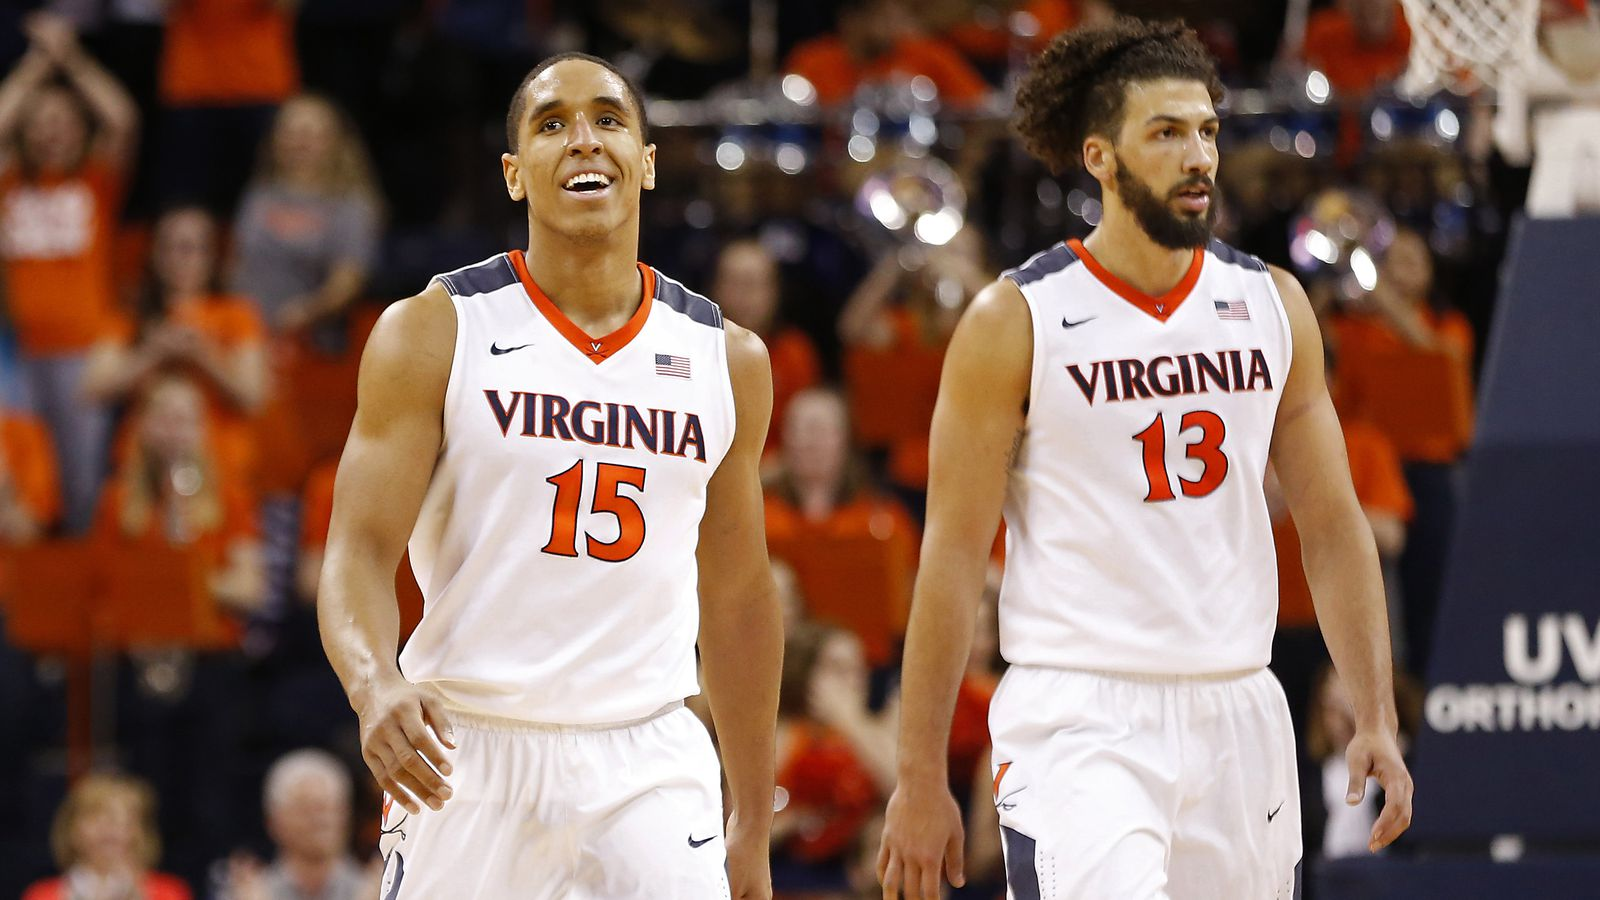 The Virginia Tech Hokies mens basketball team is a NCAA Division I college basketball team competing in the Atlantic Coast Conference Home games are played at